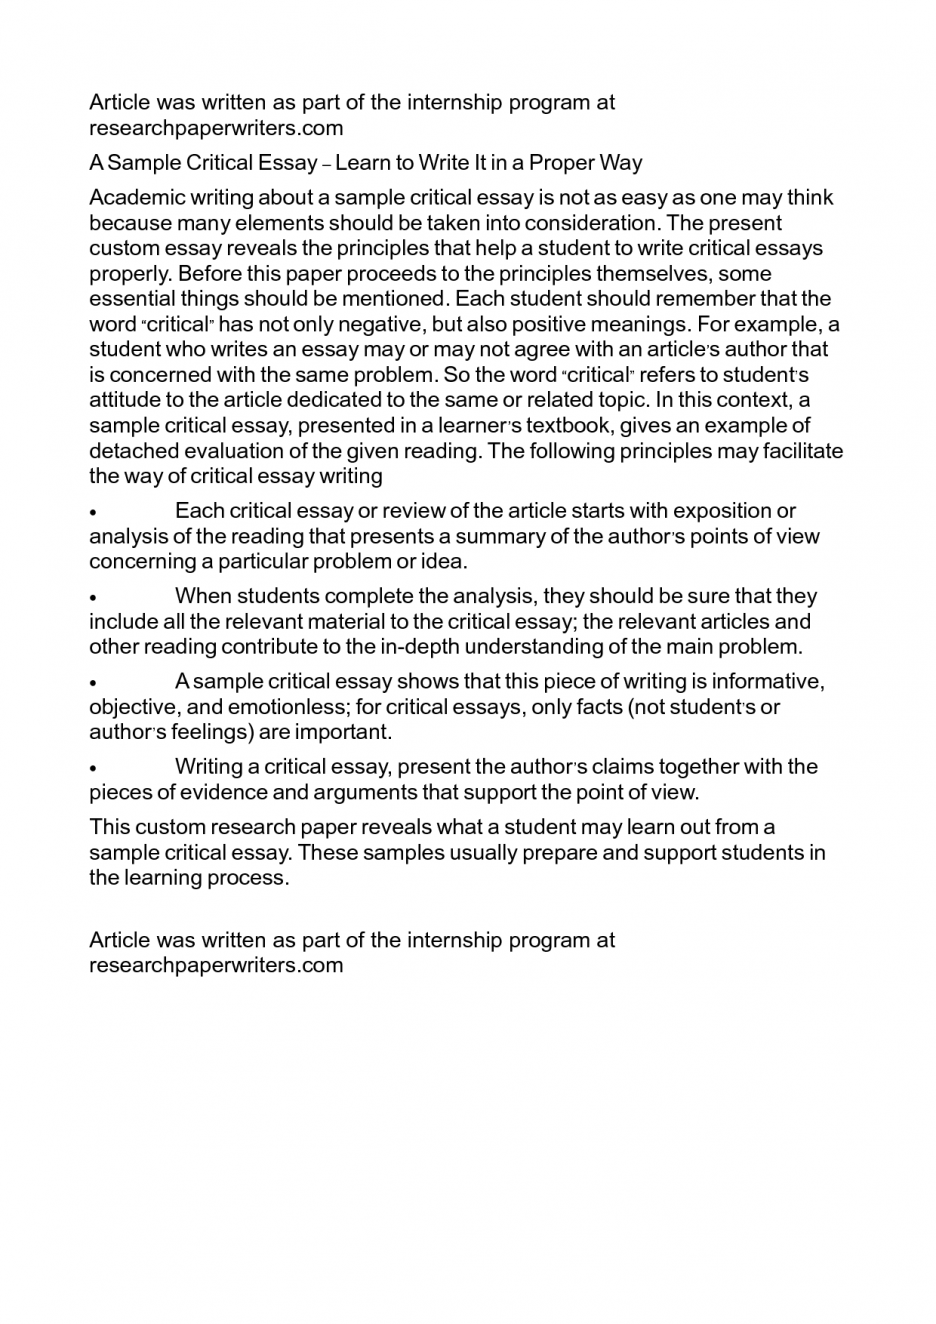 014 Essay Example Easy Writing How Write Essays Pics Ways Argumentative General Picnic Party Topic Rainy Day As Sayings Typer On Gabby Douglas Sample Movie Does It Prompts Road Excellent Way To An Analytical In Ielts Task 2 Full